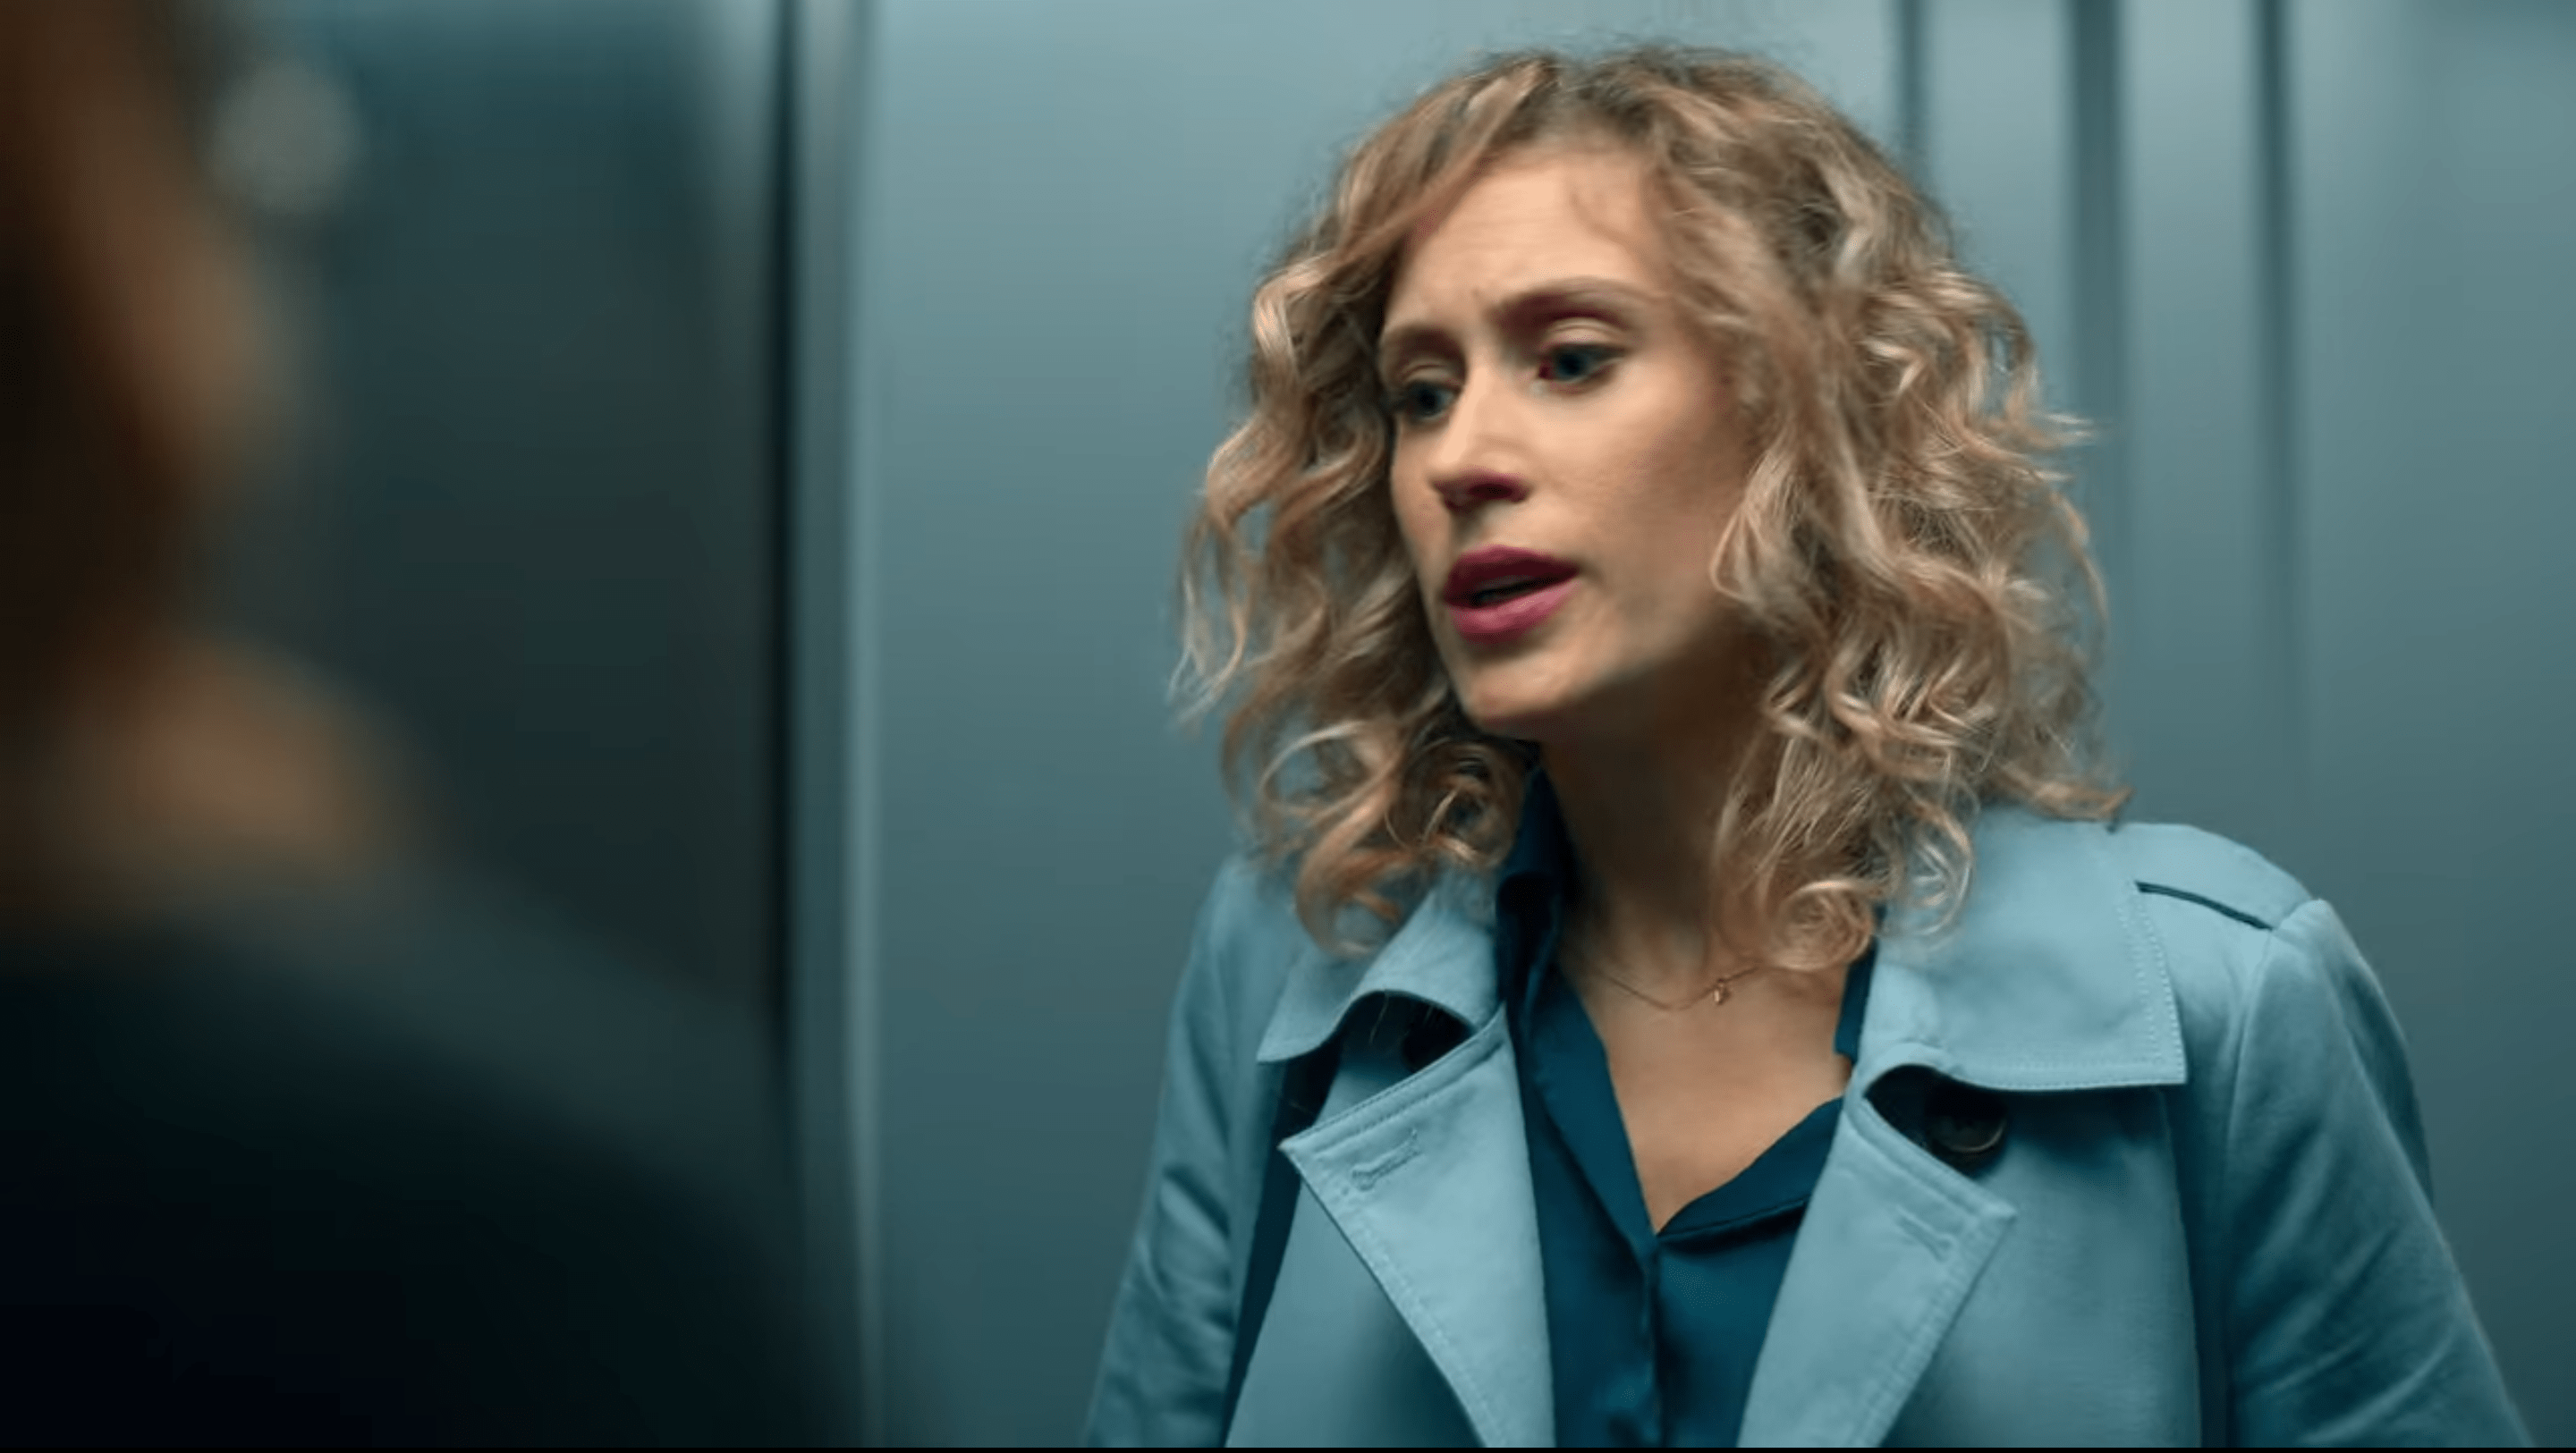 Nerea in a blue trench coat, her hair in long loose curls.